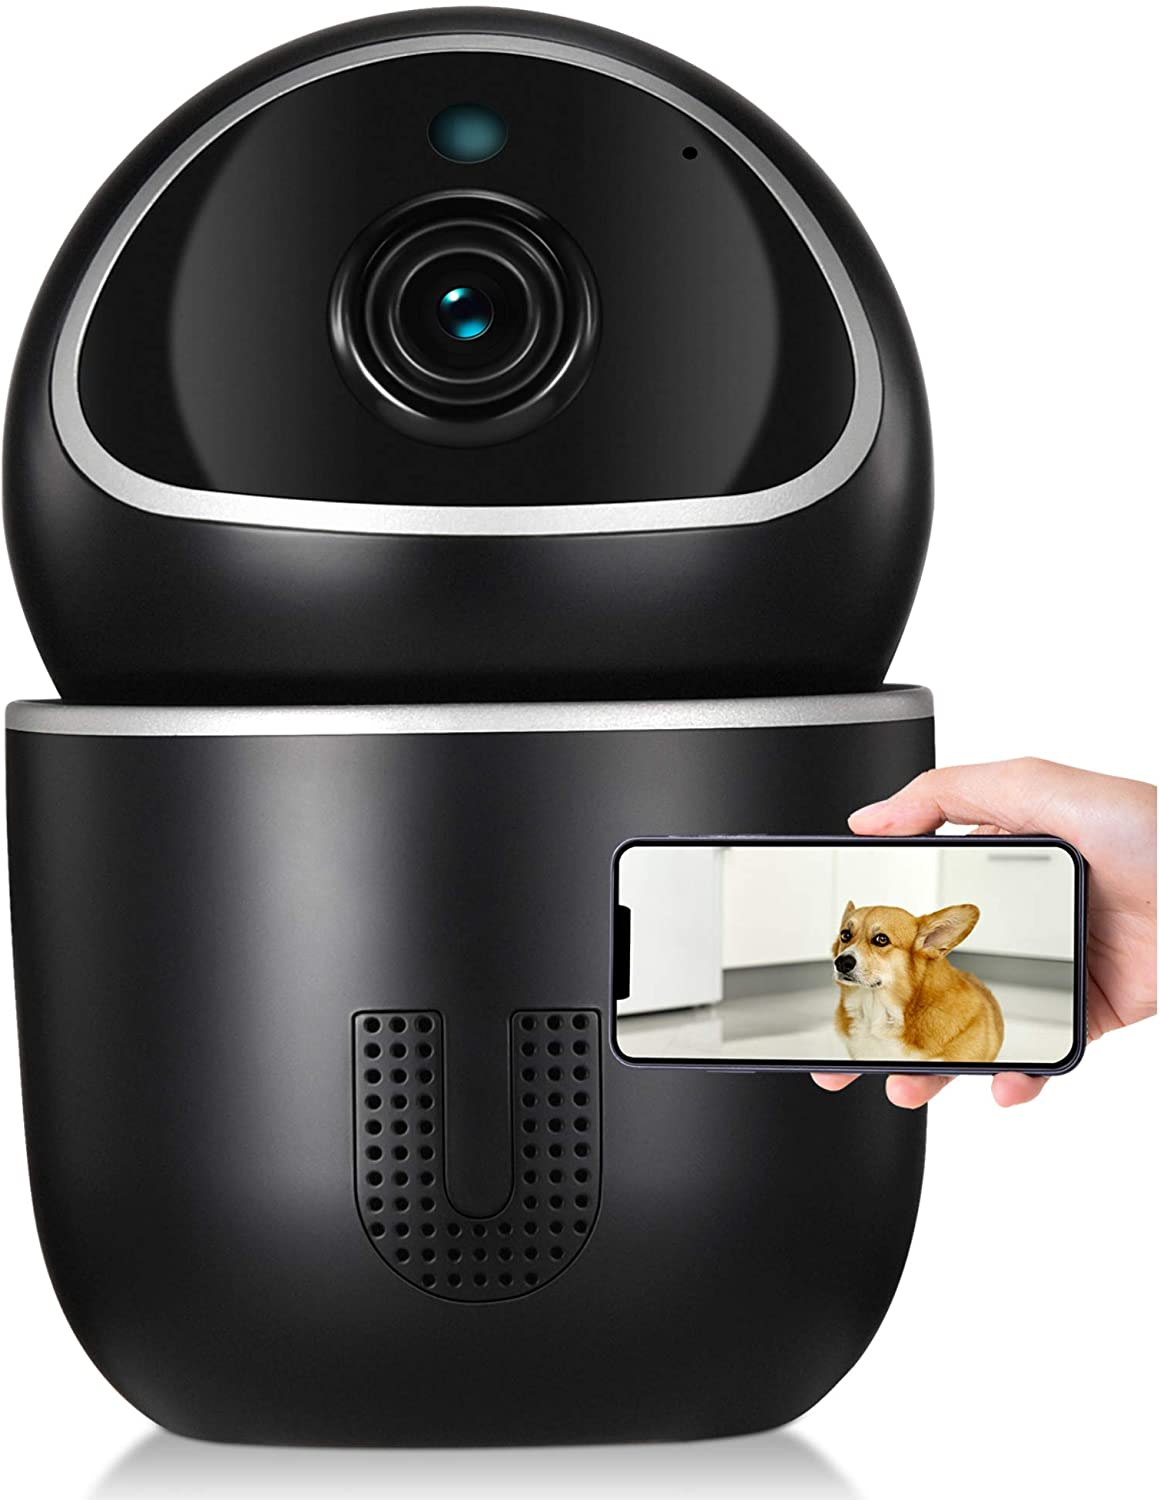 Amazon: UCAM 1080P Blockchain Technology Home Security Camera, Just $22.49 (Reg $49.99) after code and coupon!